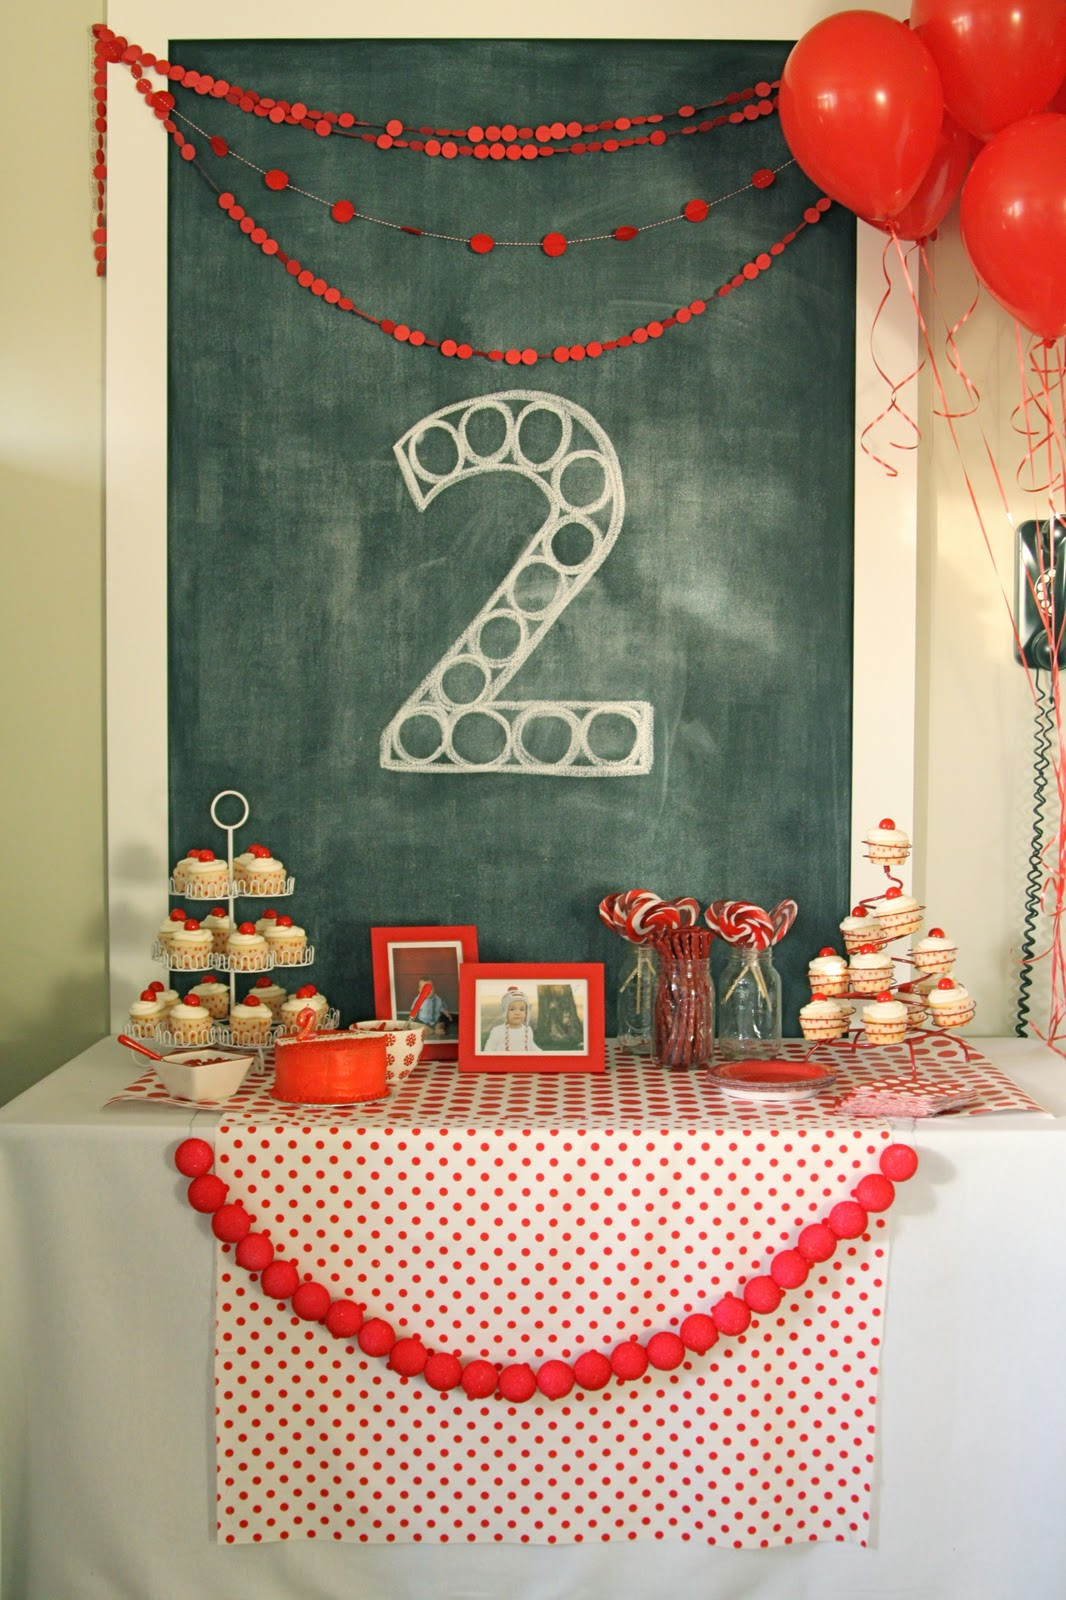 Best ideas about Two Yr Old Birthday Party Ideas . Save or Pin red ball party levi's second birthday The Macs Now.